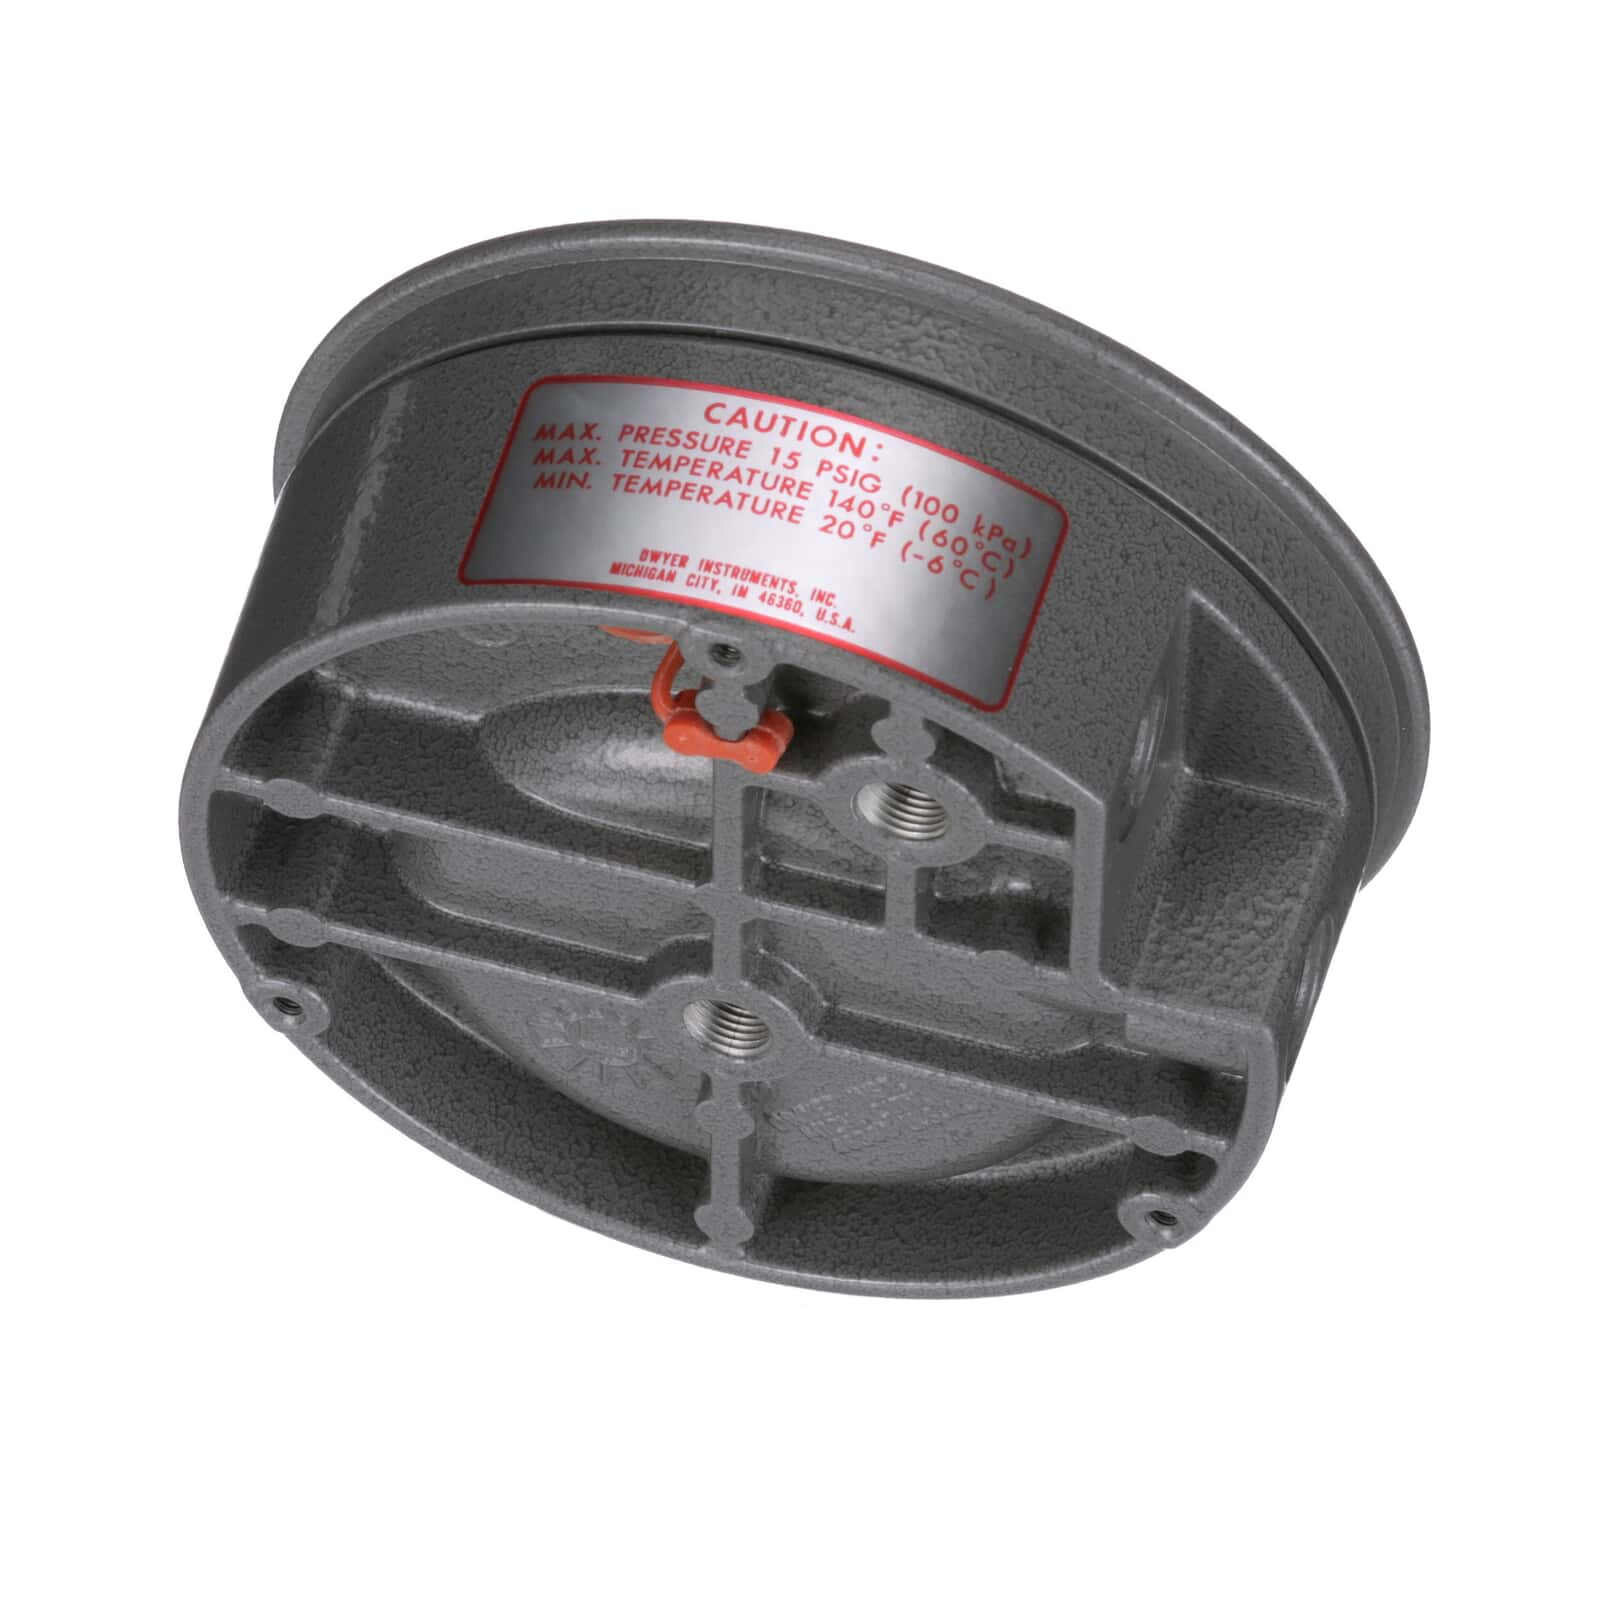 Series 2000 Magnehelic Differential Pressure Gages Is A Versatile National Brand Alternative Thermostat Wire 18 Gauge 2 500 Ft Pvc Low With Wide Choice Of 81 Models And 27 Options To